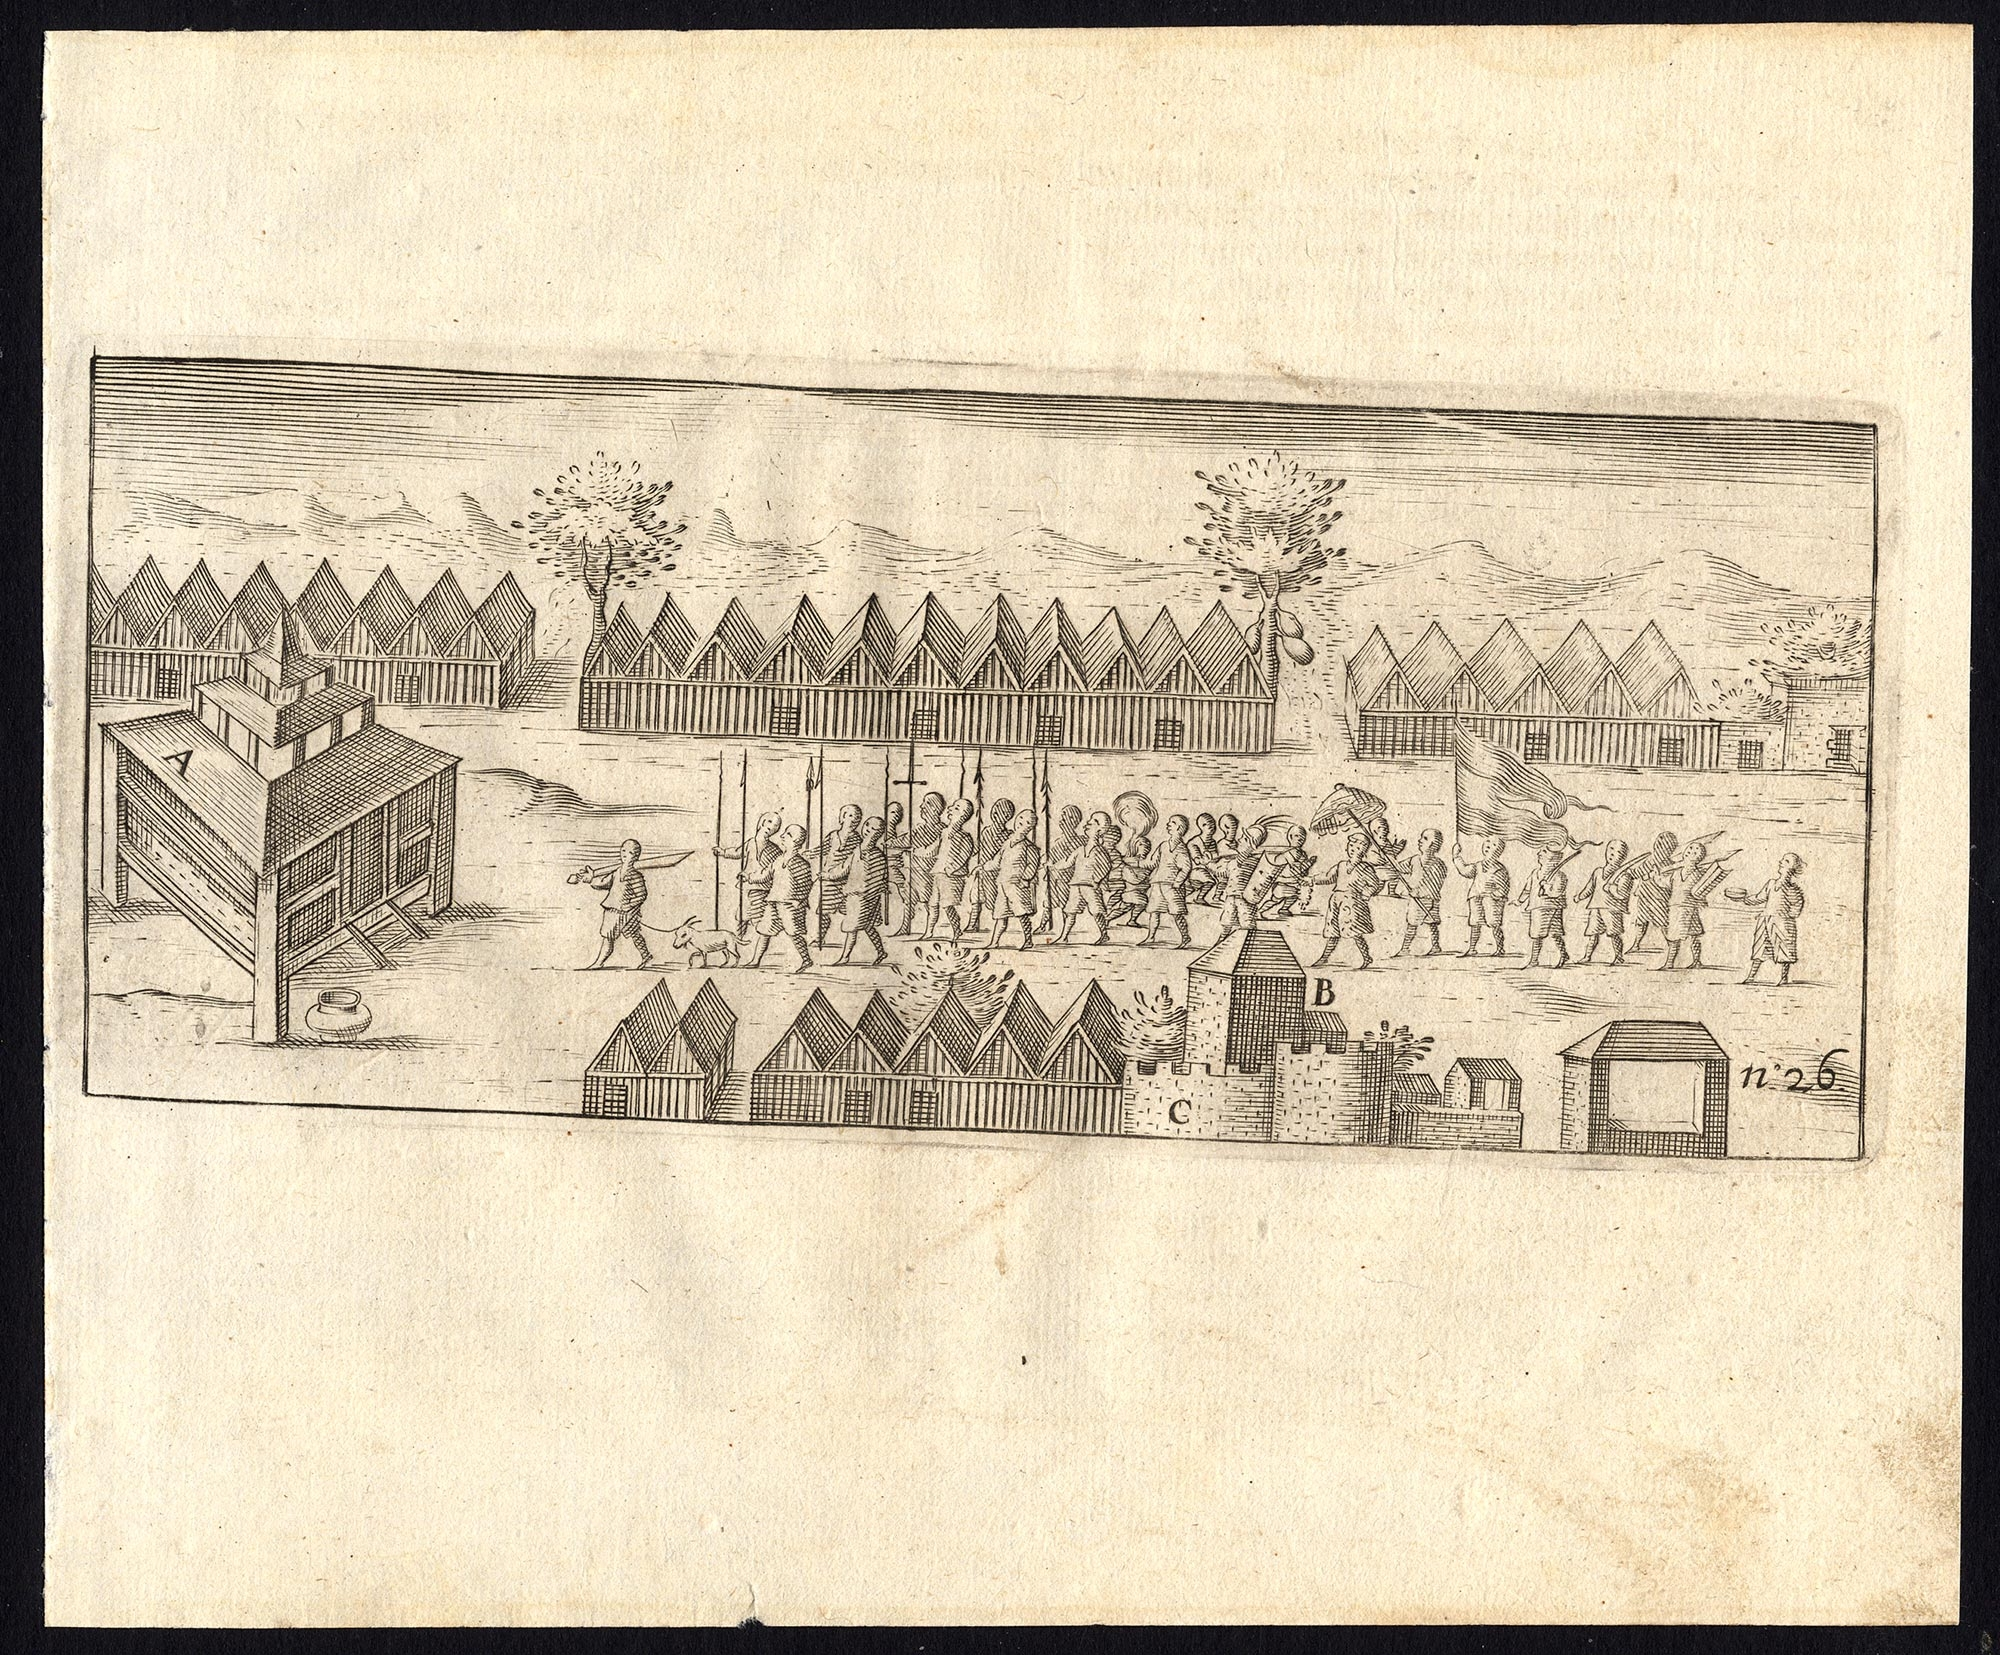 Pl.26 Ternate Sultan and Muslims going to Church - Commelin (1646)